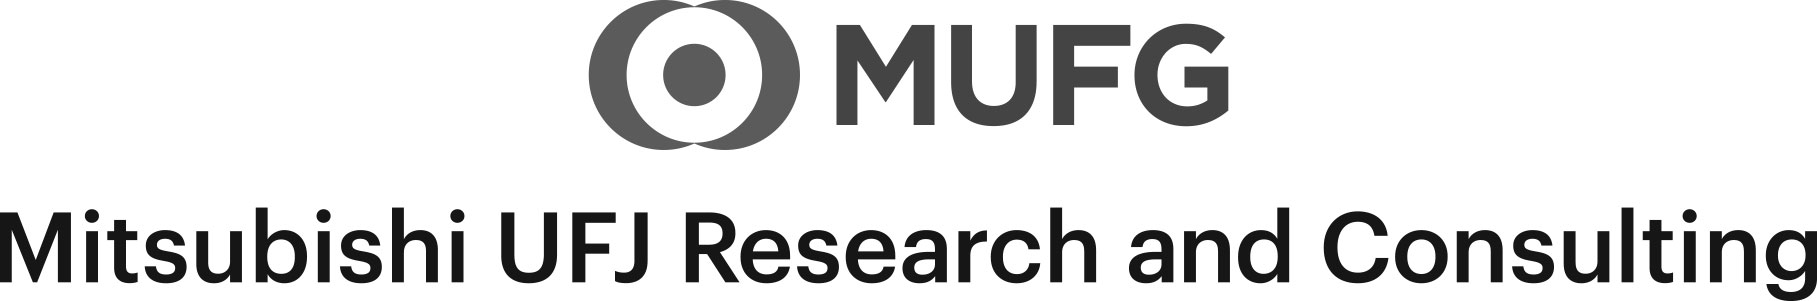 2 3Logo Mitsubishi UFJ Research and Consulting